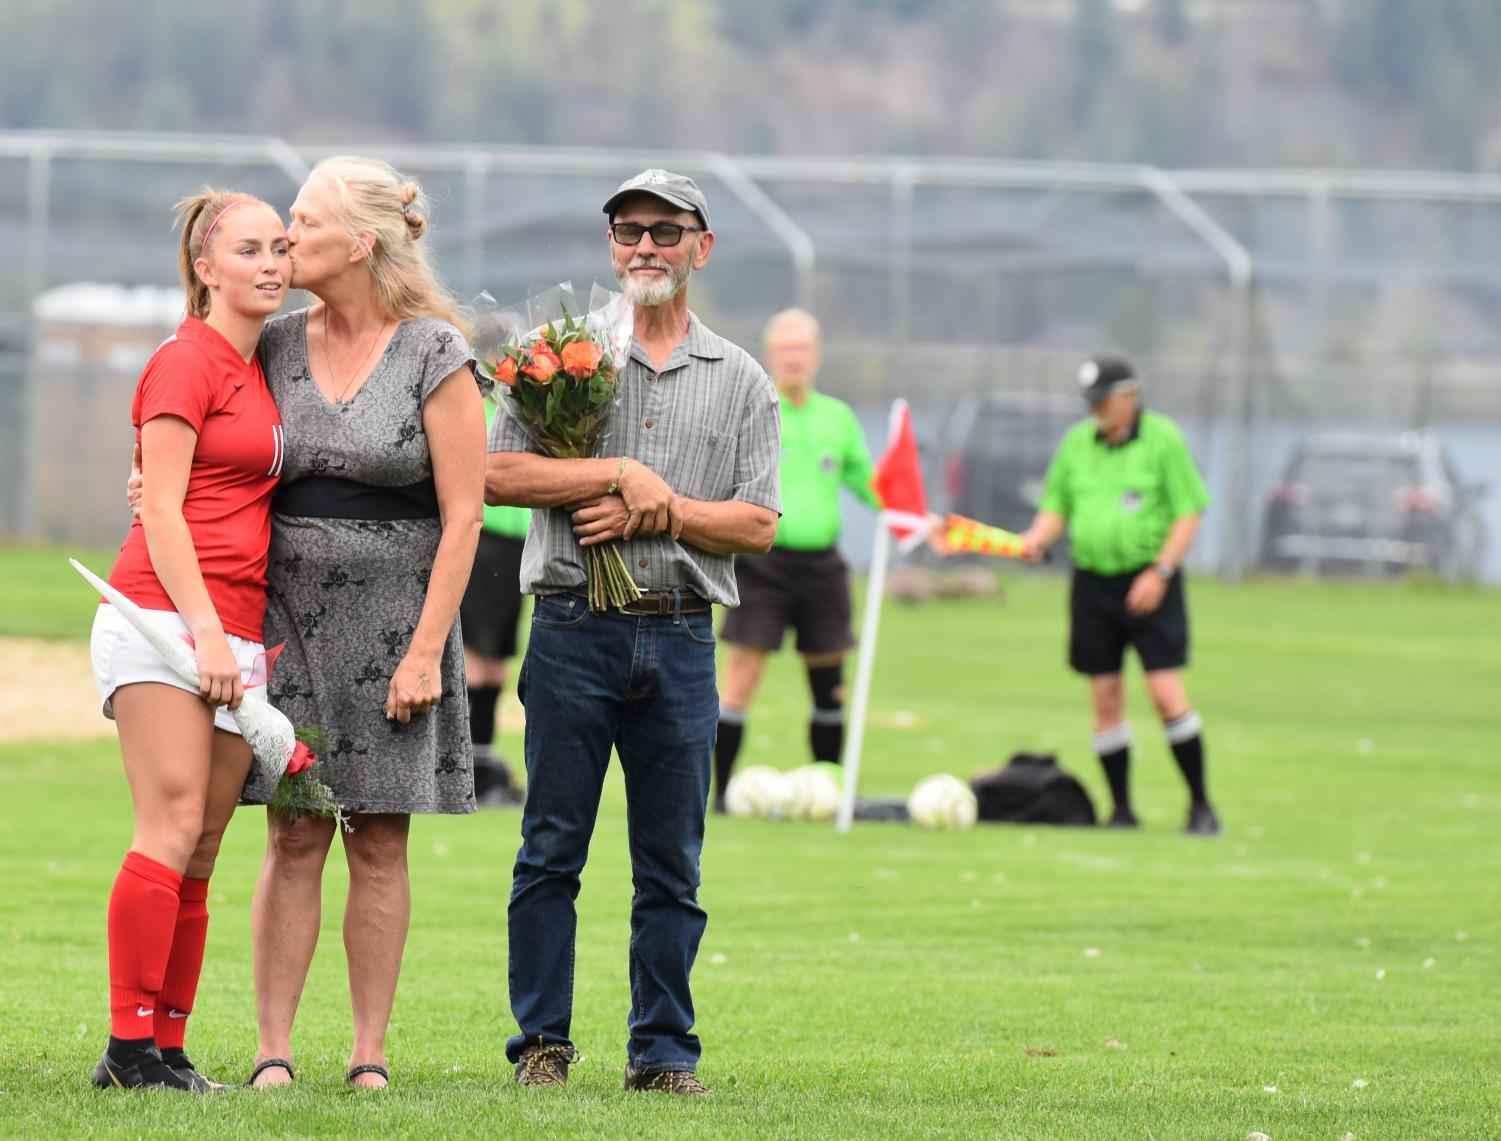 Senior+Emi+Lynch+is+embraced+by+her+mom+after+being+recognized+at+Senior+Night.